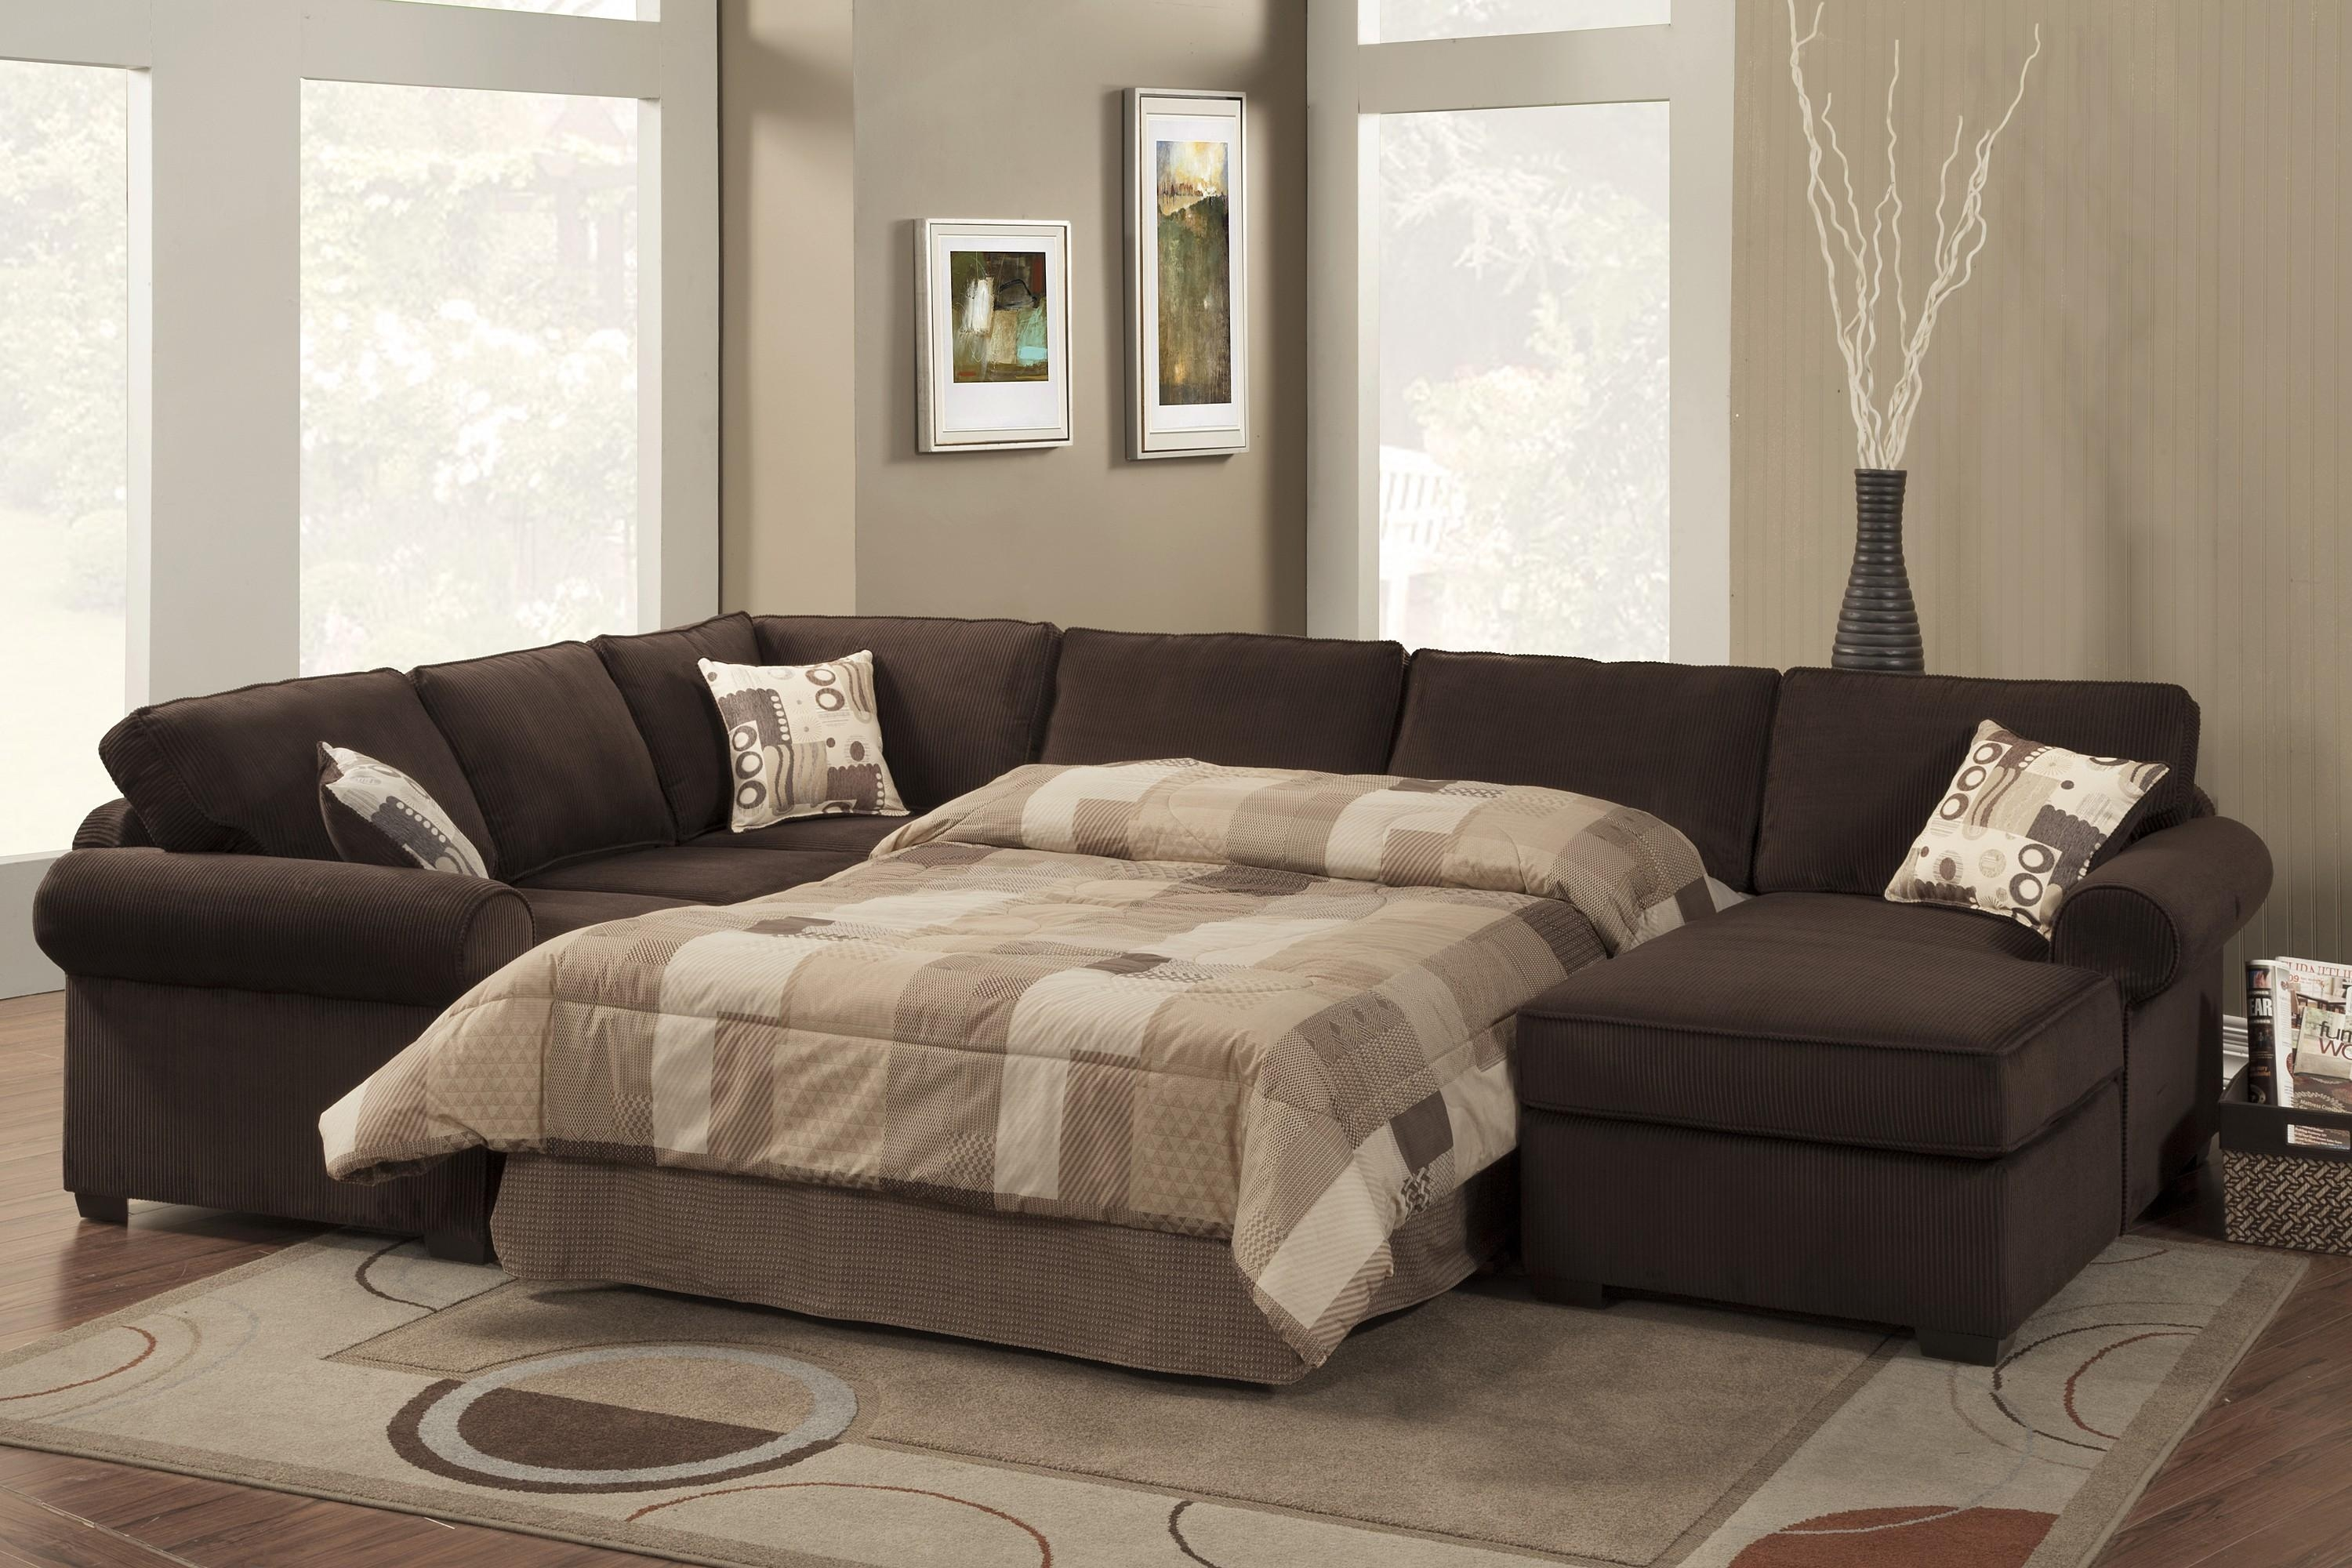 Furniture : Sofa Bed Kenya Sofa Bed Za Sofa Bed 0 Sofa Bed In Sectional Sofas Portland (Image 1 of 20)